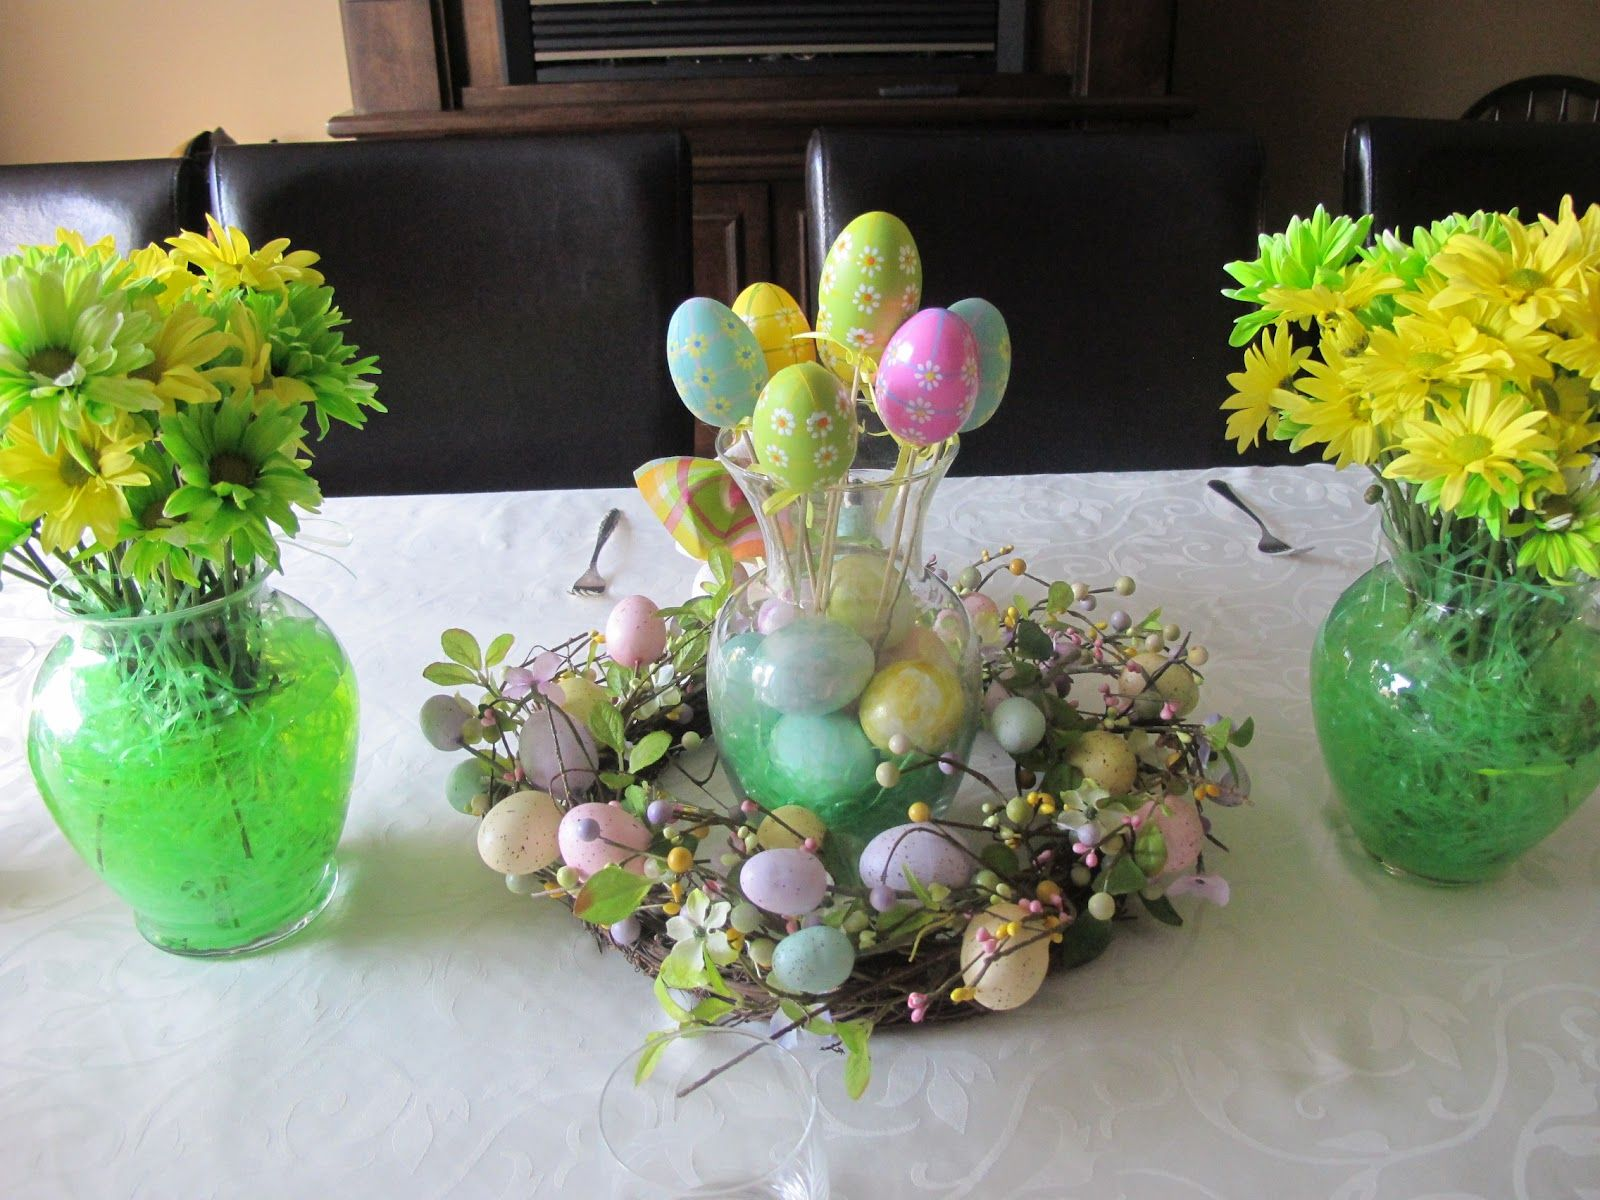 Diy Easter Decorations Diy Easter Table Decorations With Small Glass Vases Yellow Flower Easter Centerpieces Diy Easter Centerpieces Easter Table Decorations